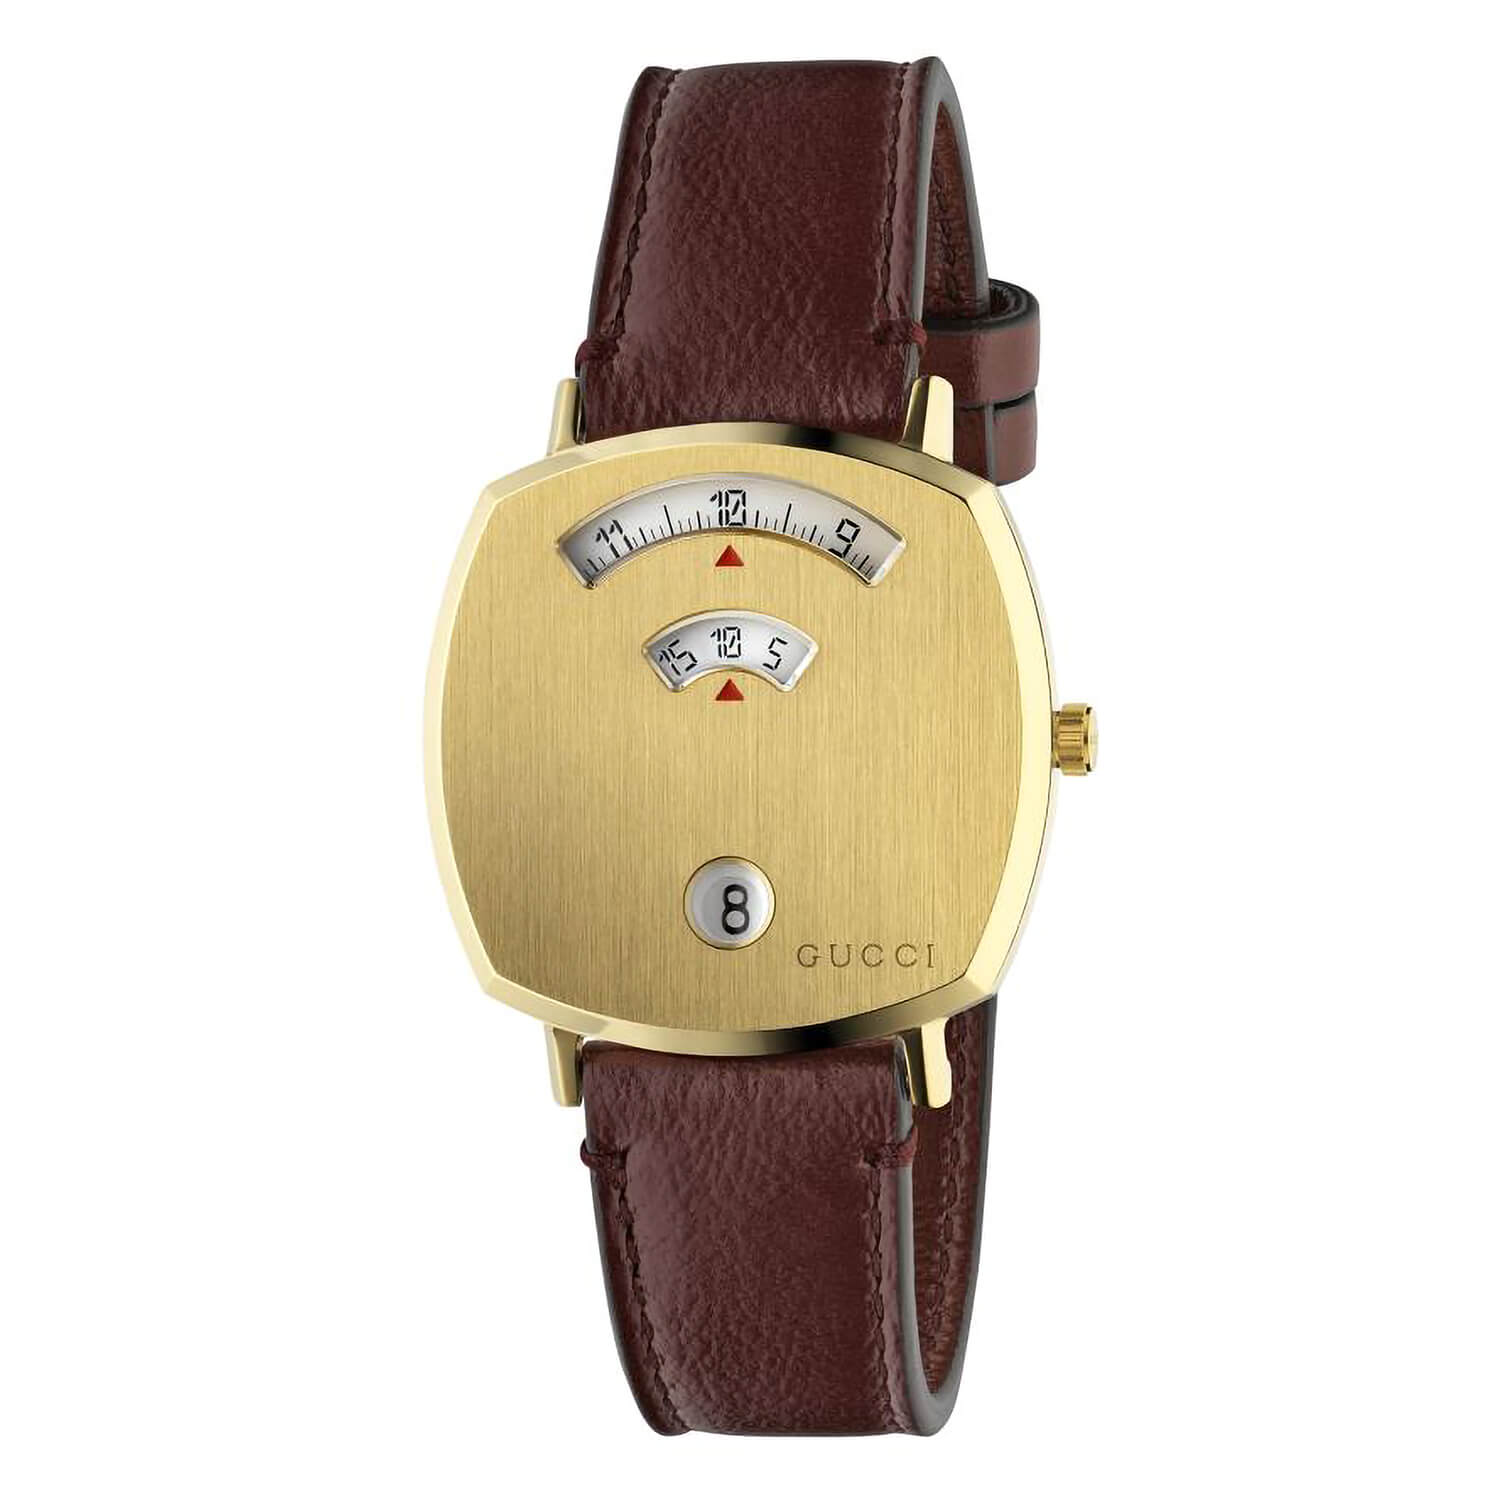 Gucci Grip GG Yellow Gold PVD Bordeaux Leather 35mm Watch